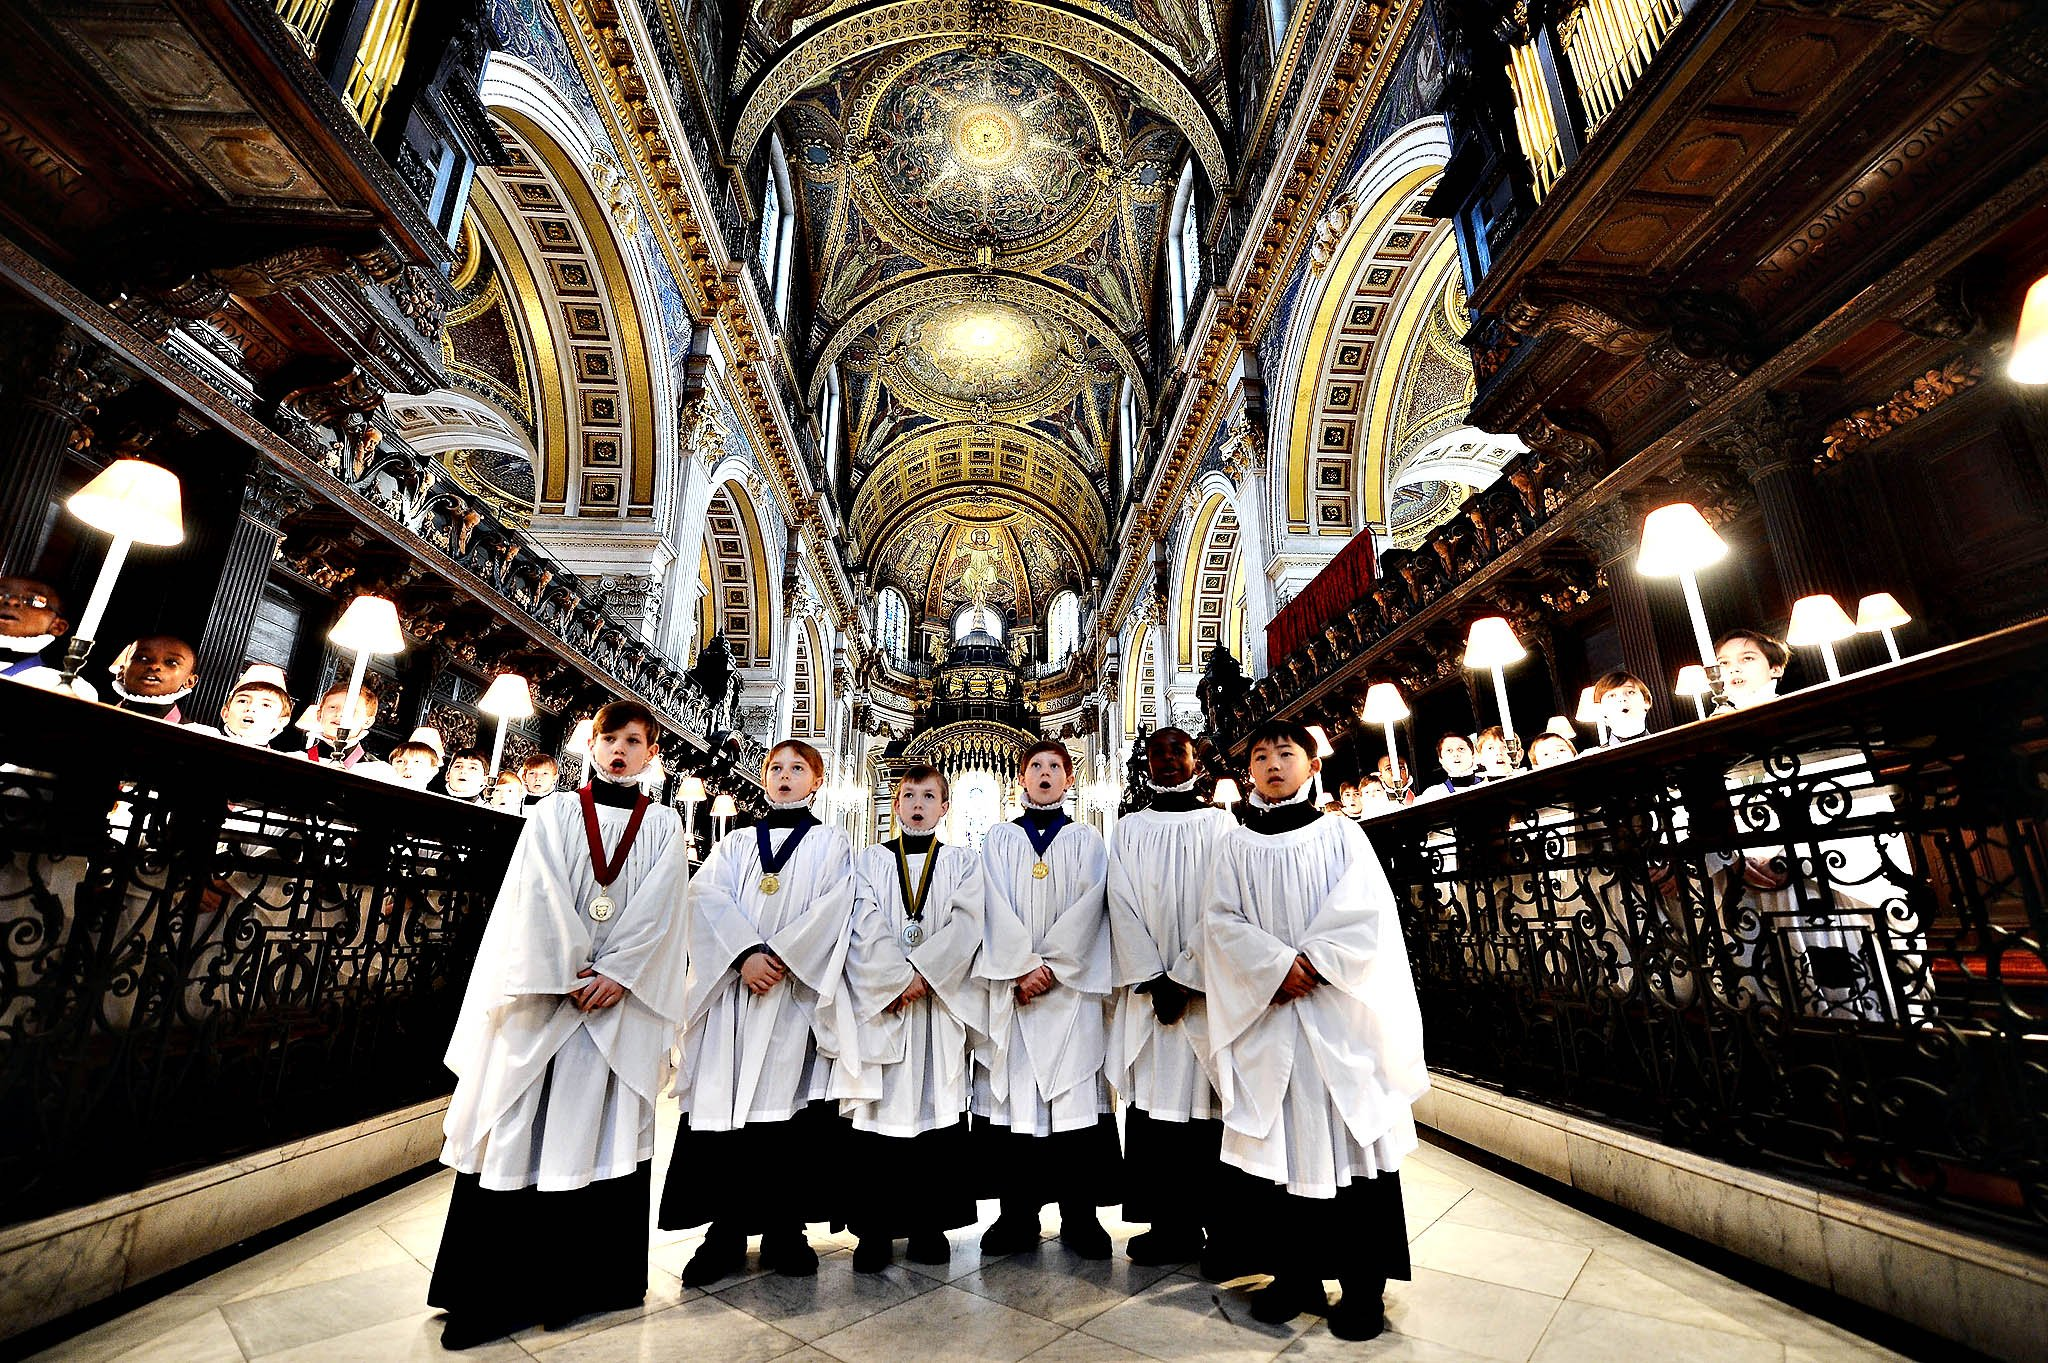 St Paul's Choristers Prepare For The Christmas Services...LONDON